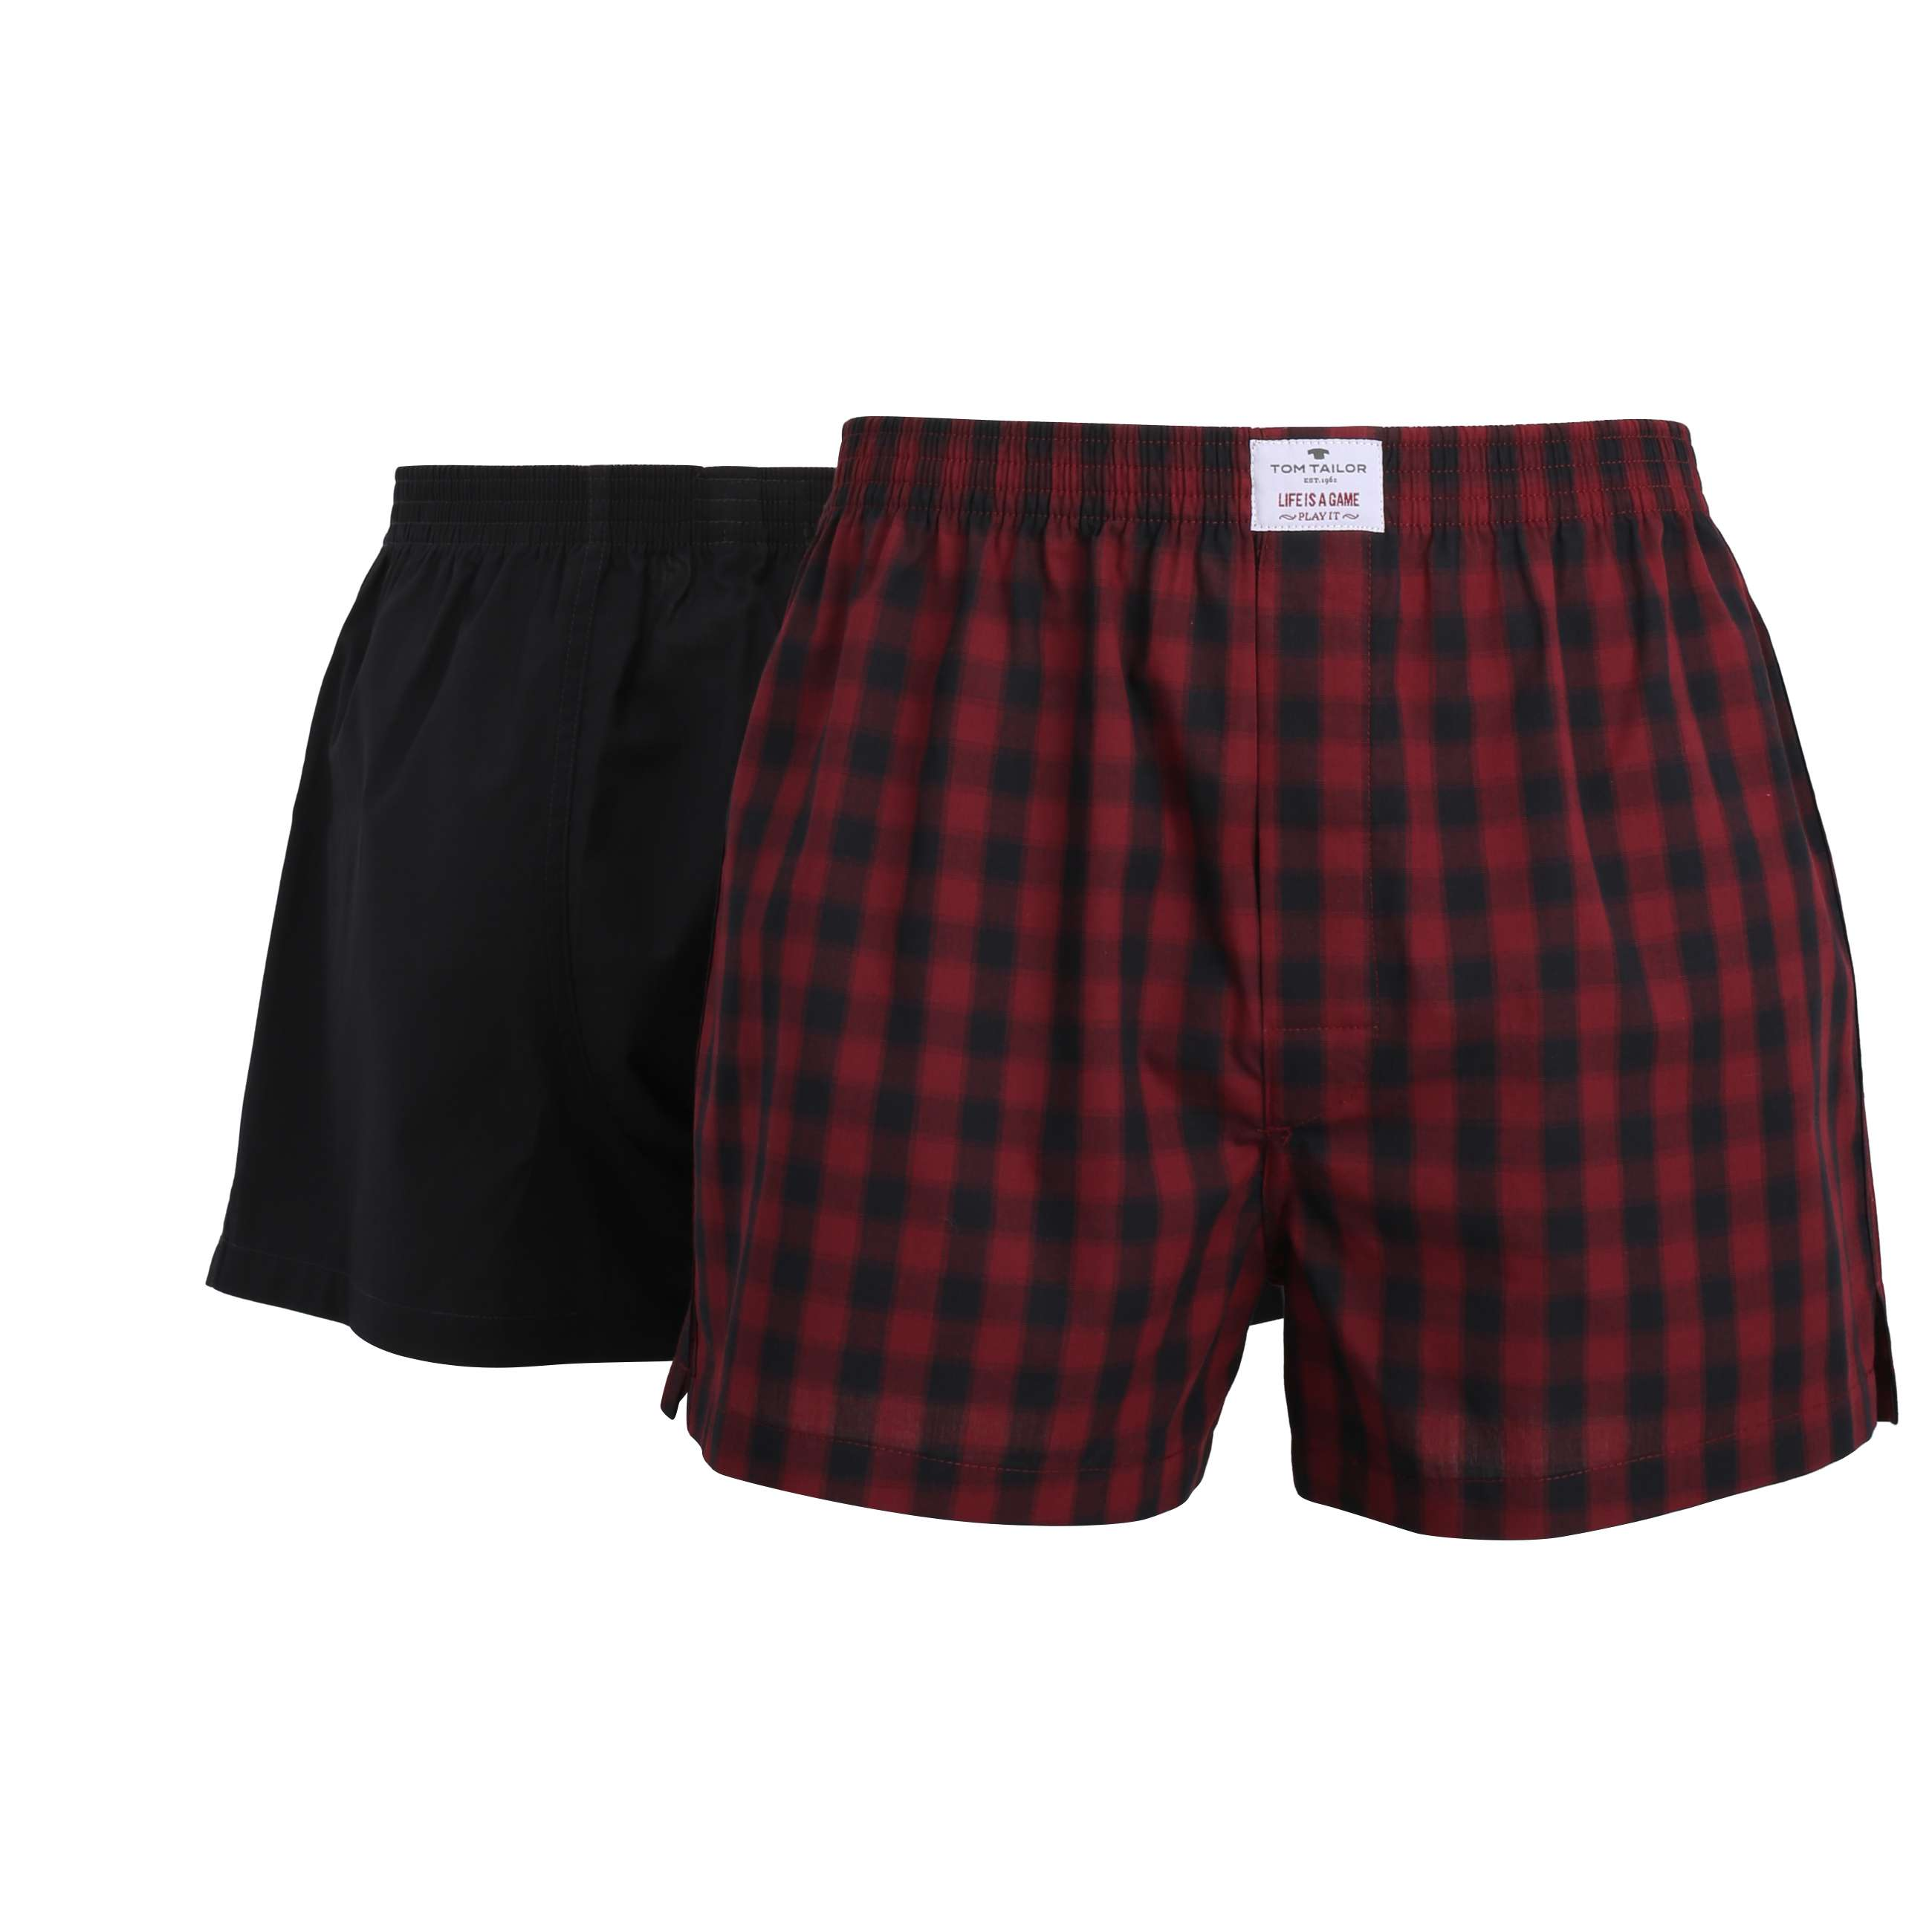 tom tailor herren boxershort unterhose rot 2er pack. Black Bedroom Furniture Sets. Home Design Ideas